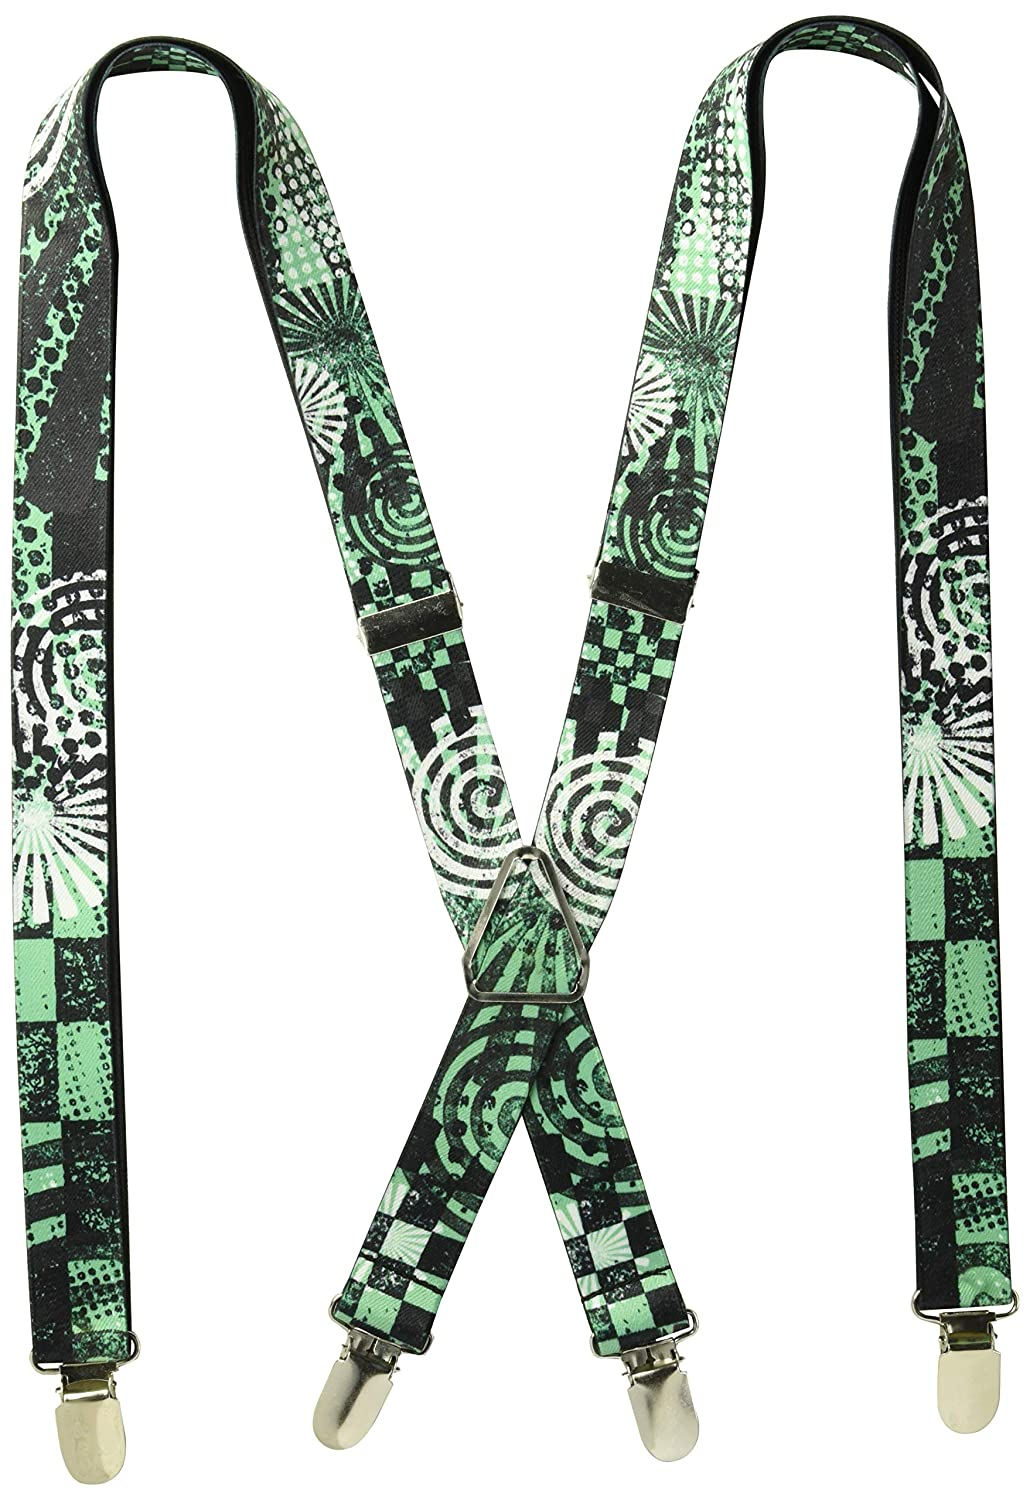 Black Green Checkers Stripes Polka Dots Symbols Suspenders Buckle Down SP-W30722